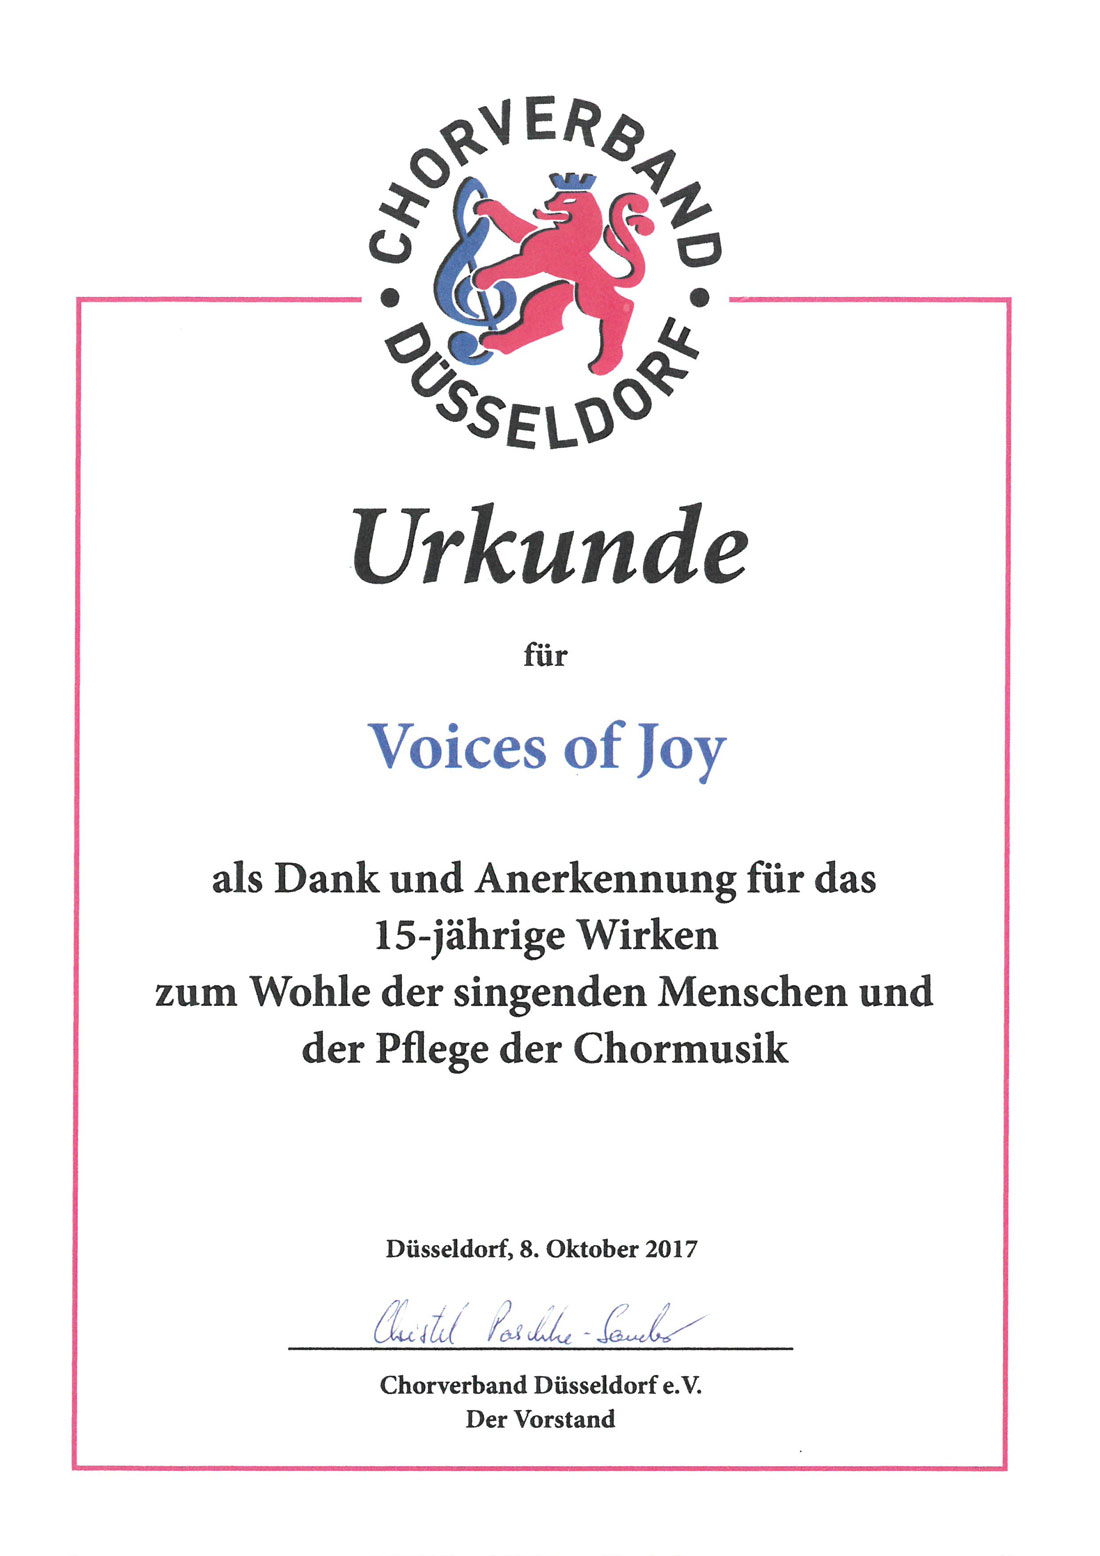 Gospelchor Düsseldorf Urkunde Voices of joy